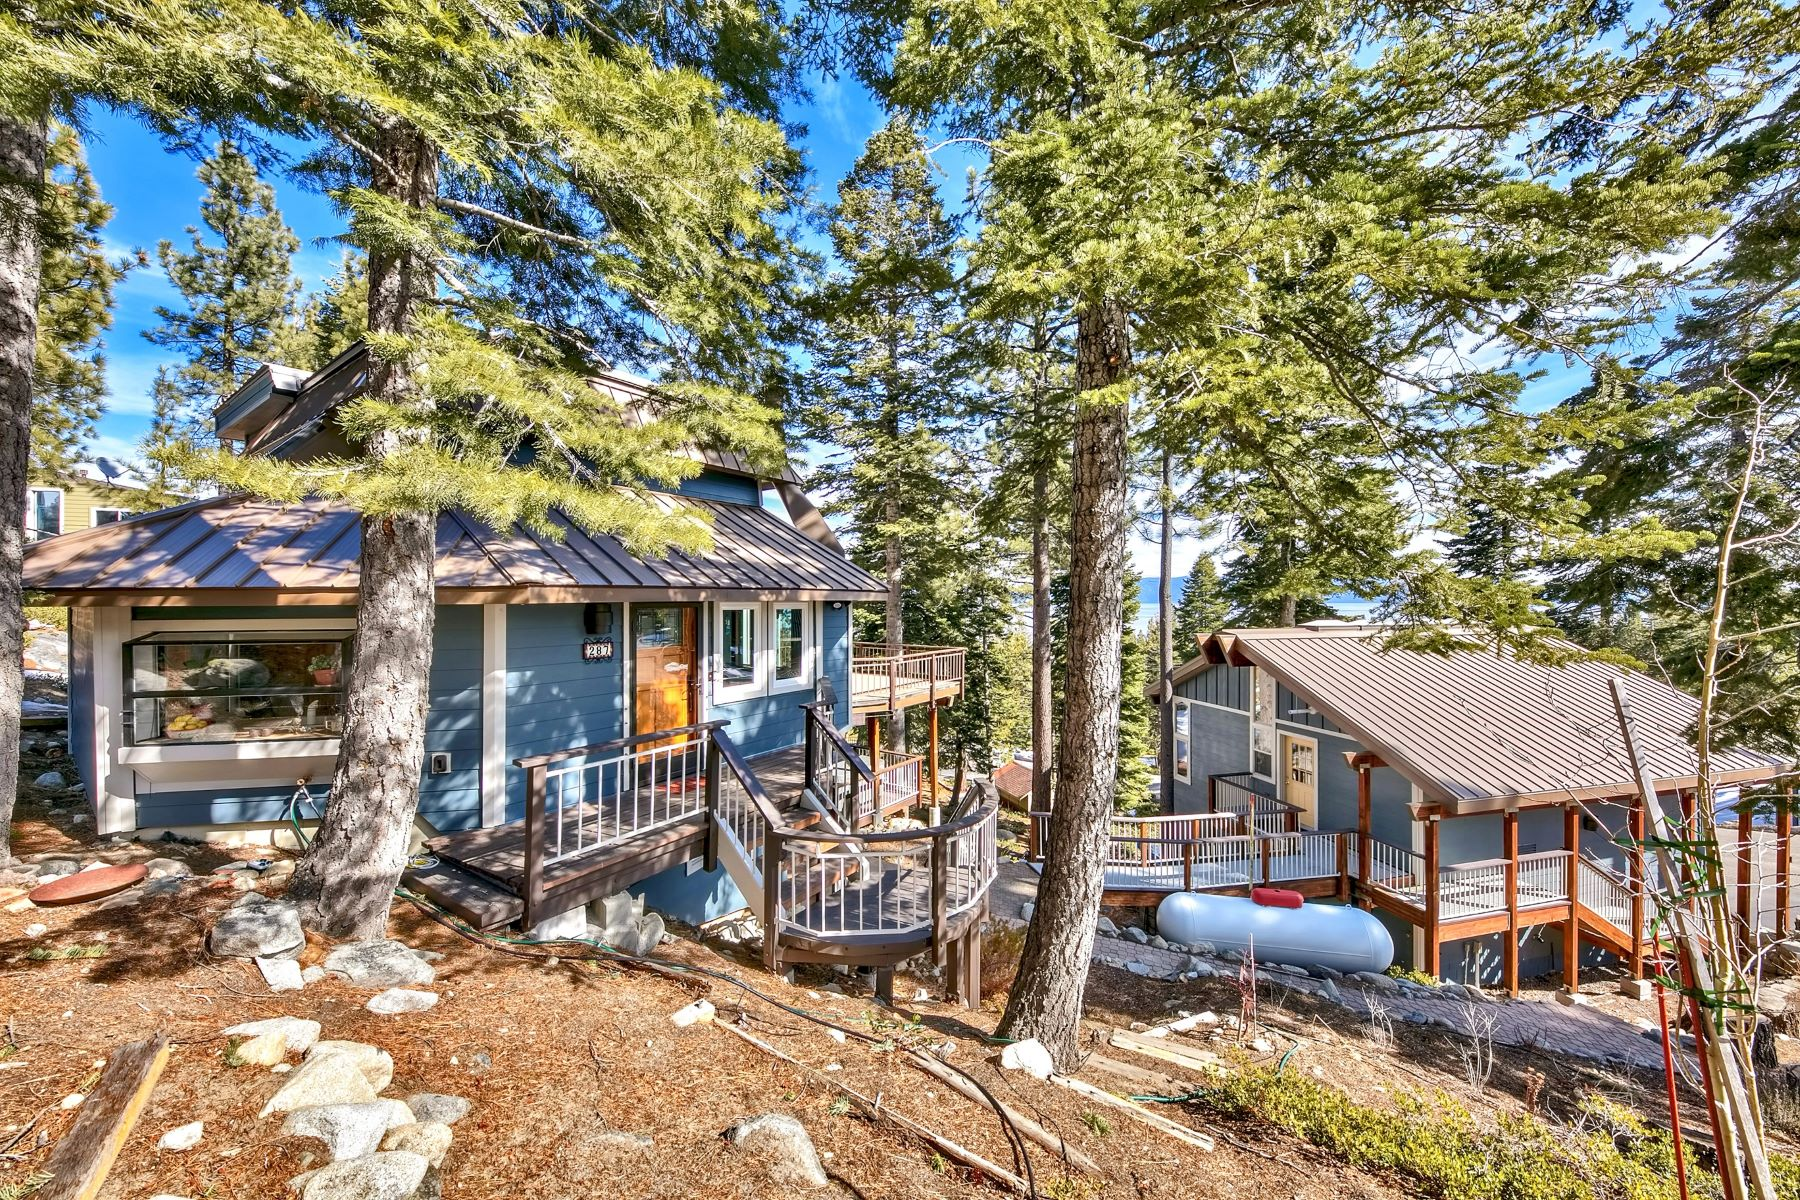 Additional photo for property listing at 287 Cedar Ridge Road, Tahoma, CA 96142 287 Cedar Ridge Road Tahoma, California 96142 United States